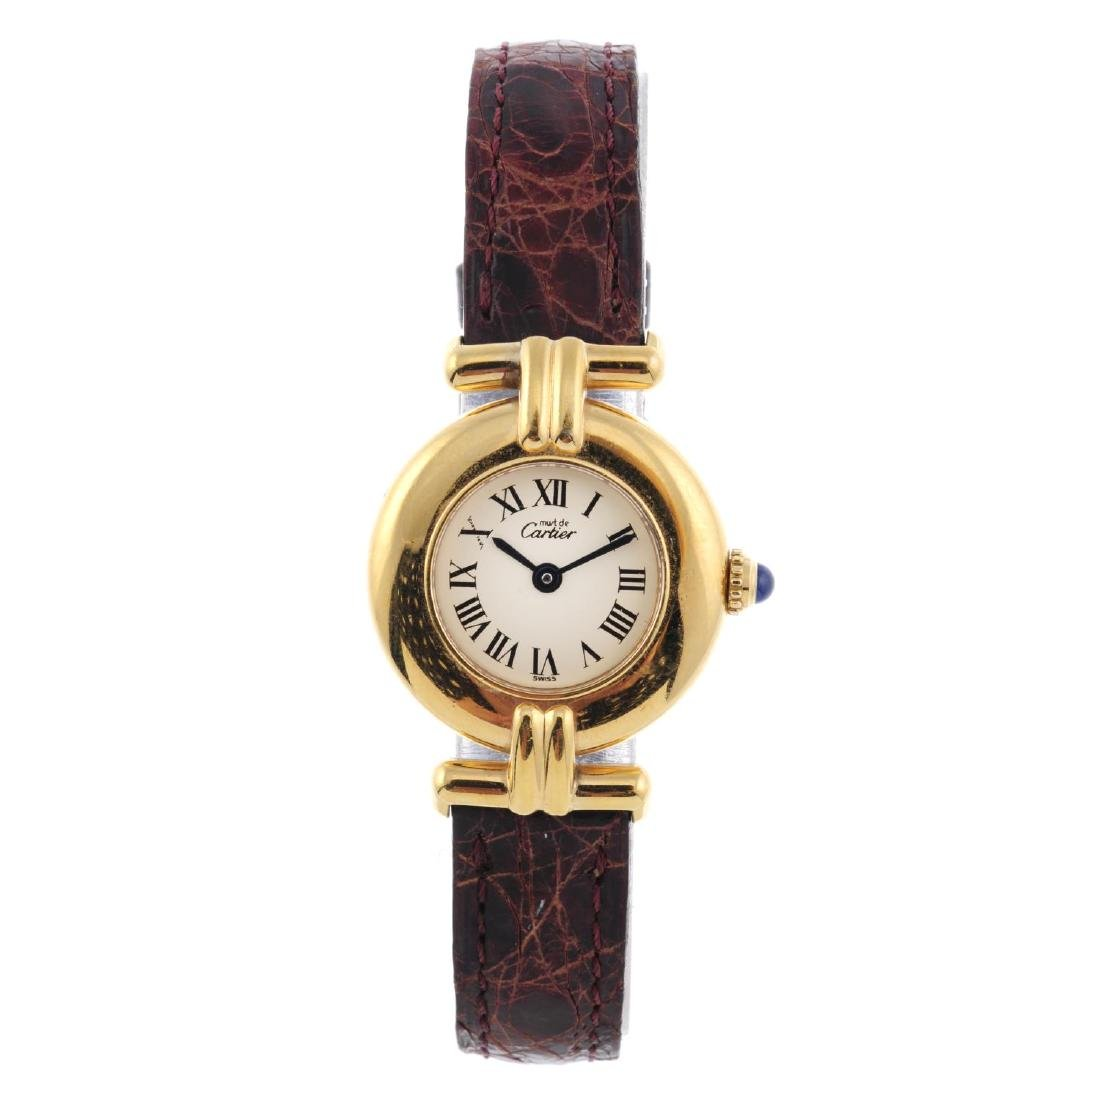 CARTIER - a Must de Cartier Rivoli wrist watch. Gold